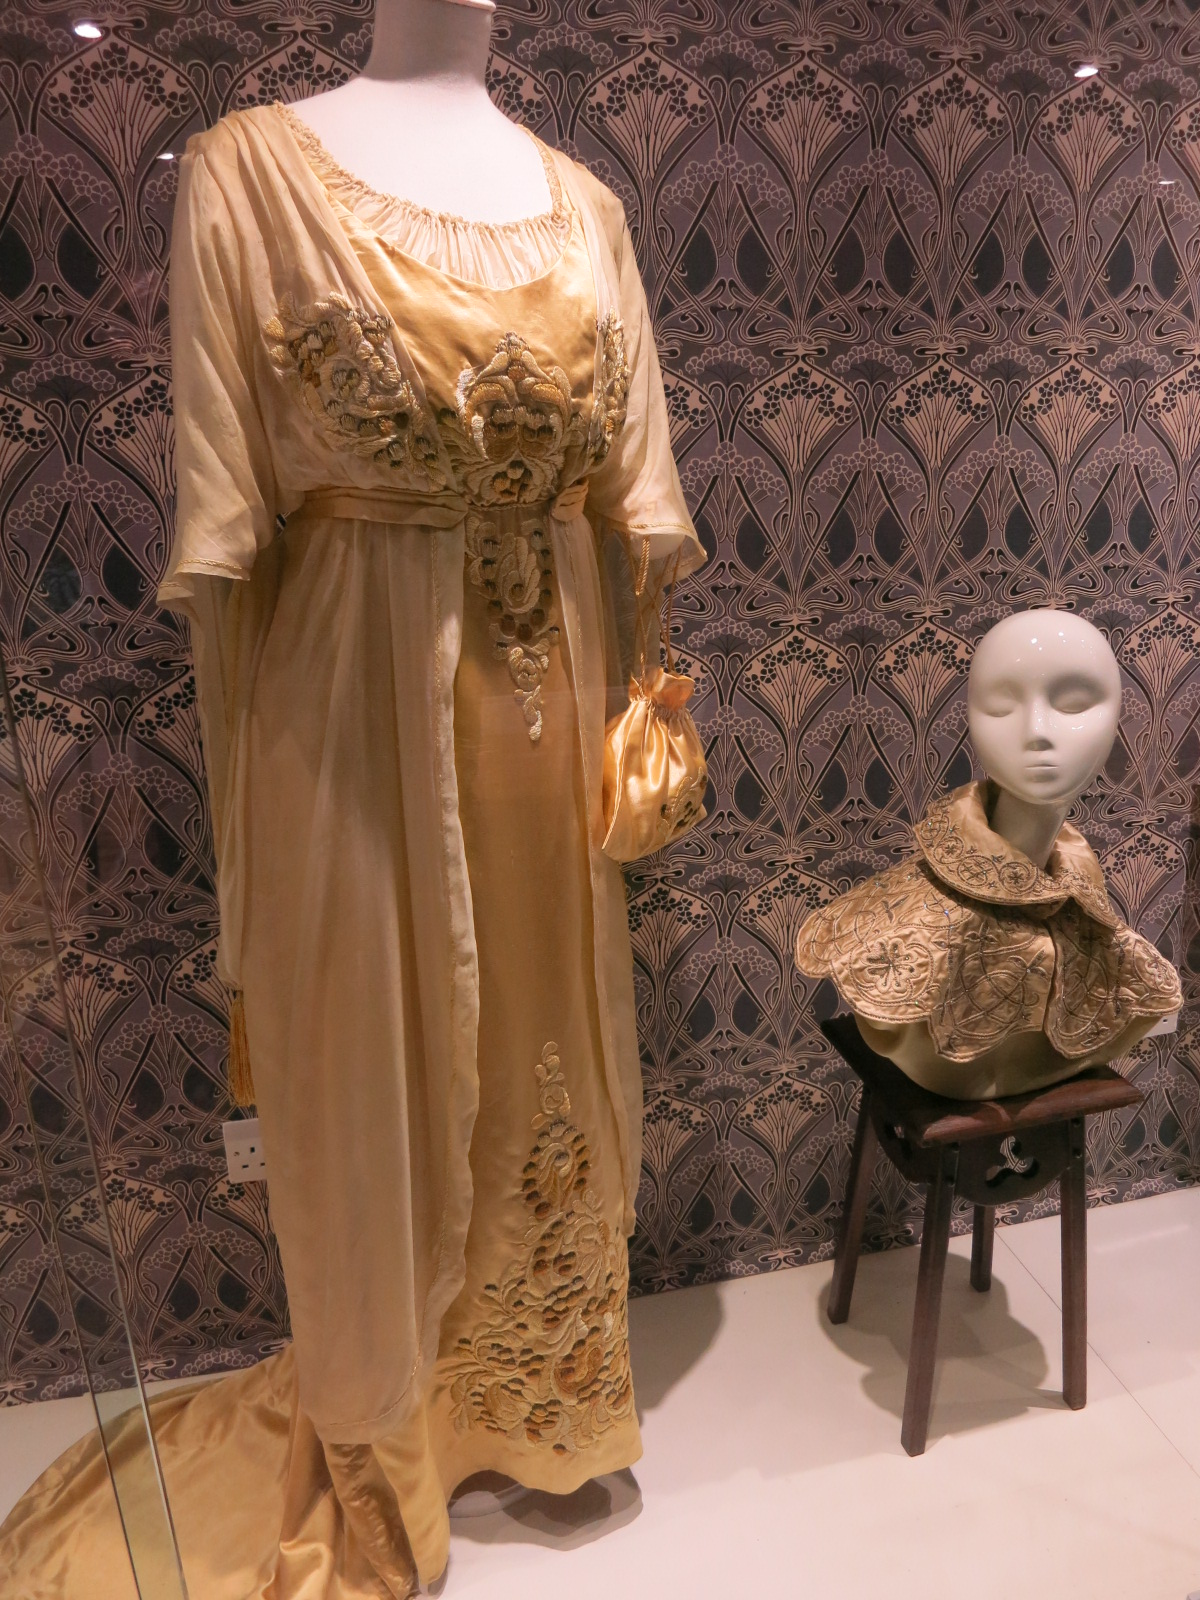 Liberty in Fashion exhibition at the Fashion & Textile Museum, Bermondsey, London 2015. These two exhibits are a c1910 afternoon dress and an 1895 collar